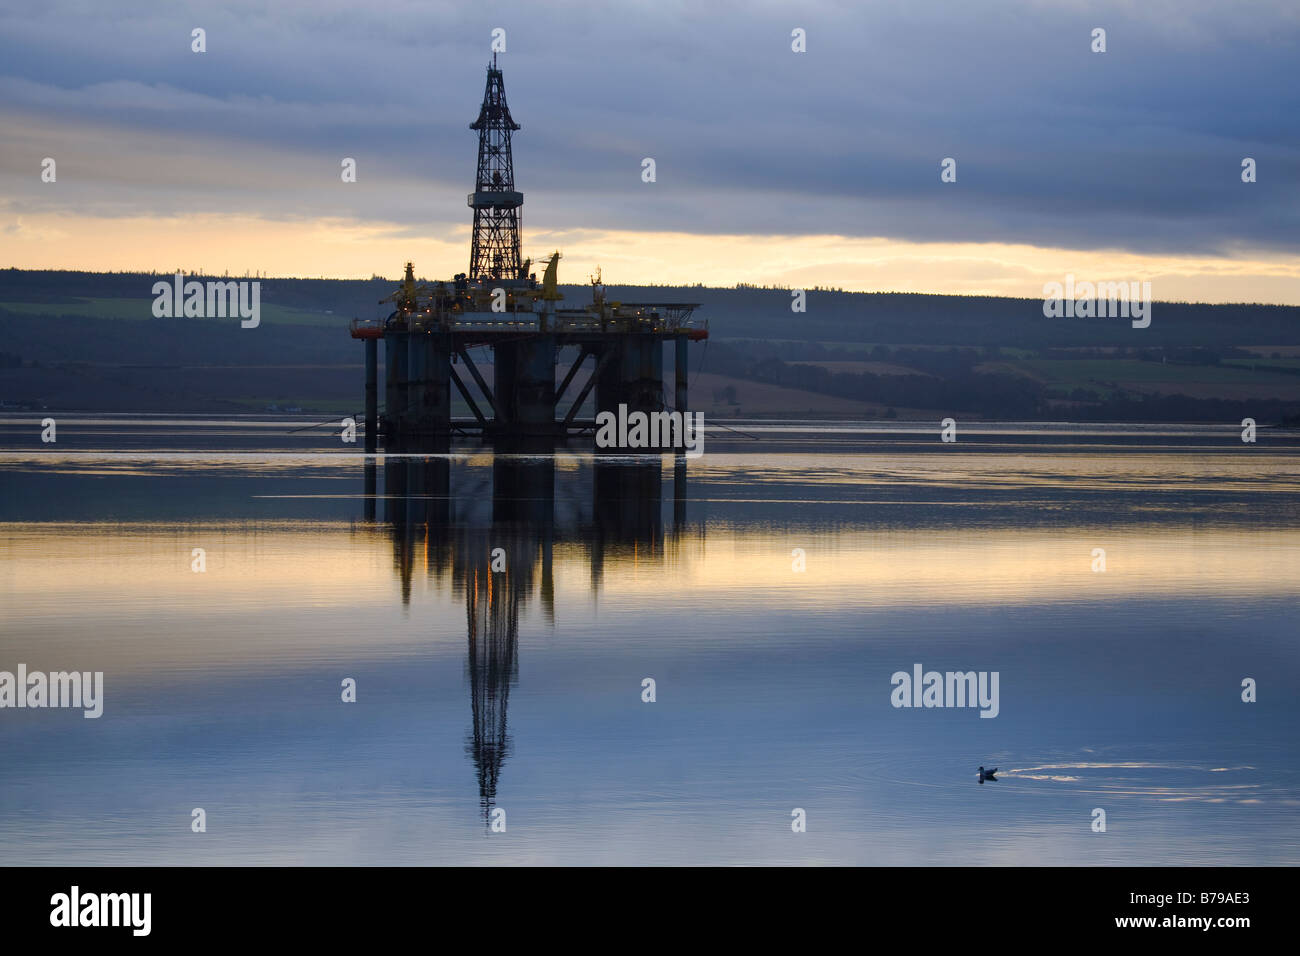 GSF ARCTIC II, Oil Rig in Cromarty Firth, in the port of Invergordon, Scotland, UK - Stock Image